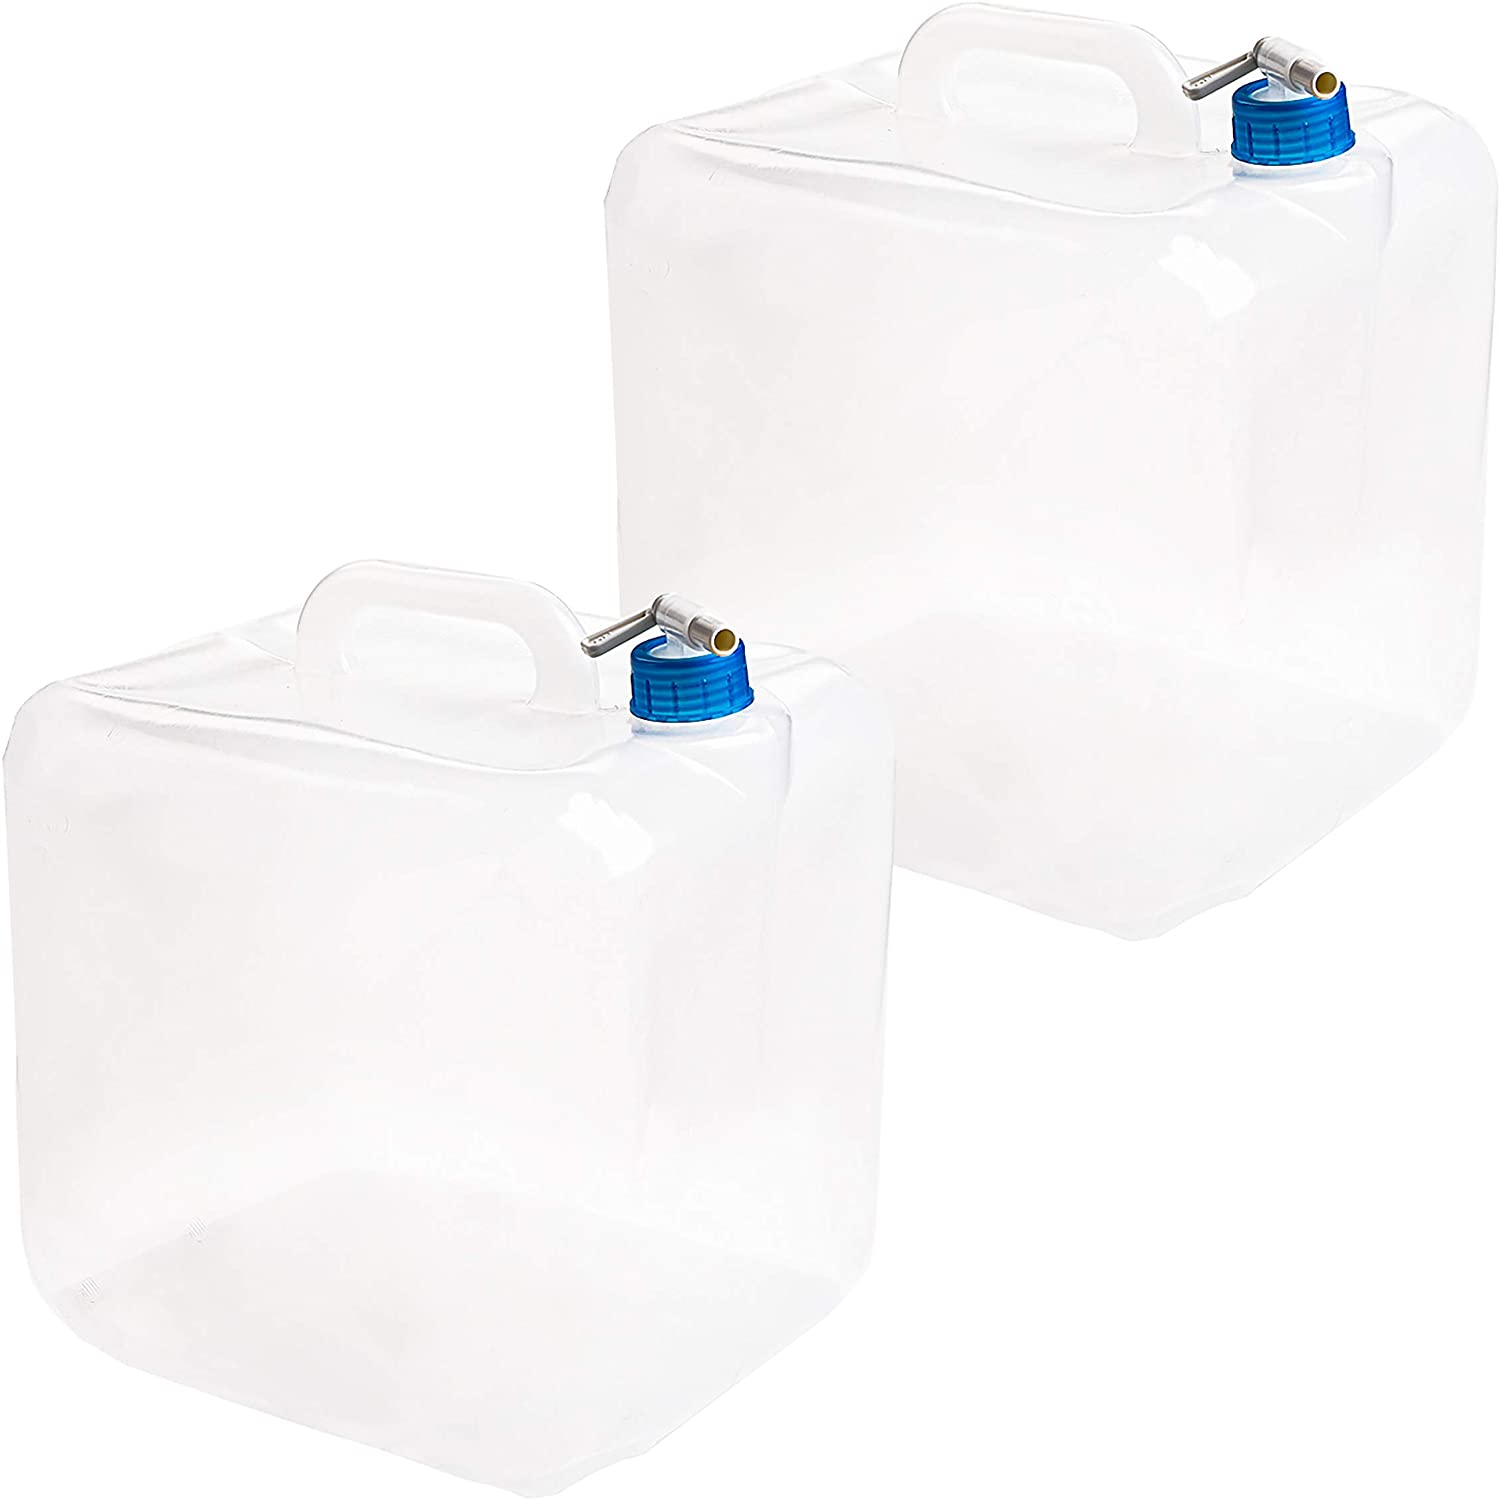 Cedilis 2 Pack 5.3 Gallon Collapsible Water Container with Spigot, Food Safe Water Storage Cube, BPA-Free Camping Water Storage Jug Canteen for Outdoor Hiking & Emergency, Portable, Foldable